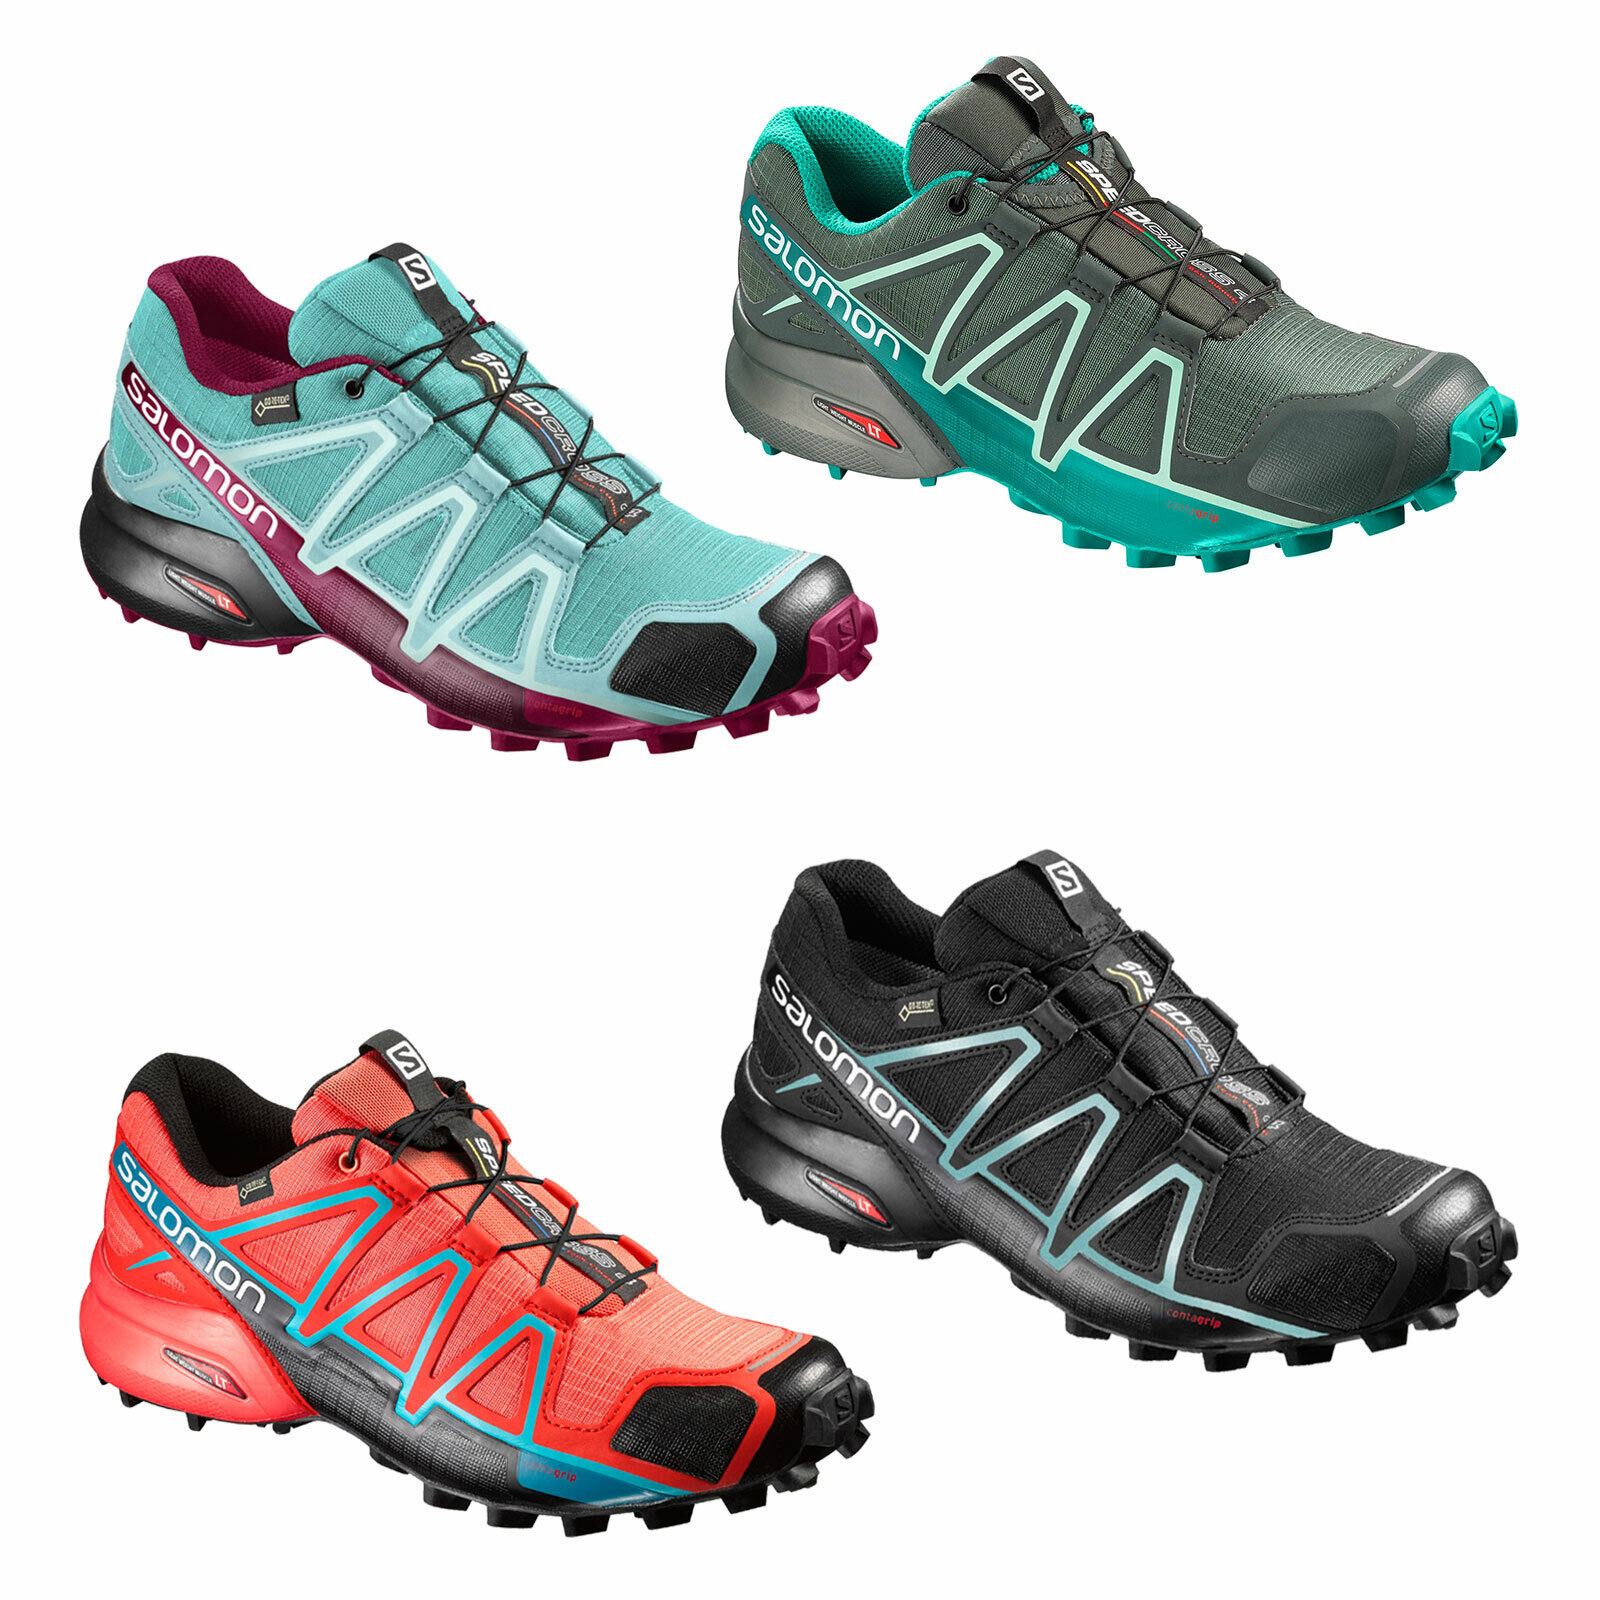 huge selection of b9ae0 1c51e Outdoor Schuhe Damen Wasserdicht Vergleich Test +++ Outdoor ...